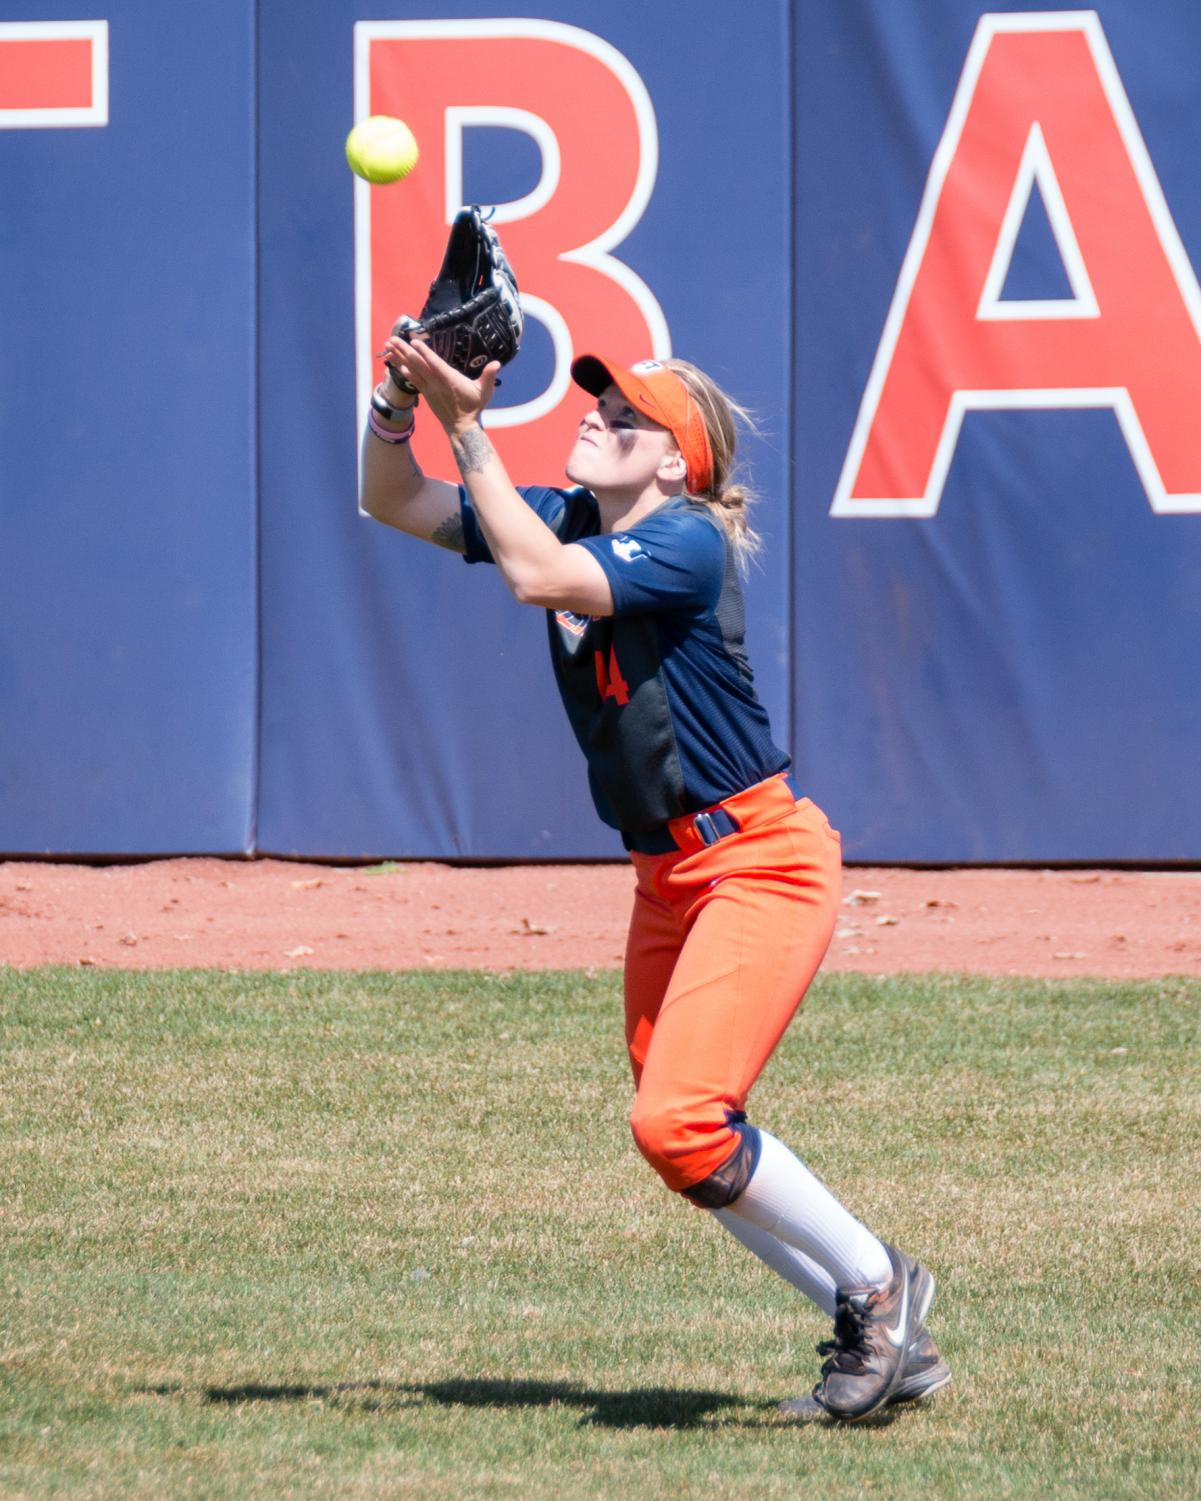 Illinois right fielder Maddi Doane catches a fly ball during the game against Minnesota at Eichelberger Field on April 1. The Illini won 4-3.